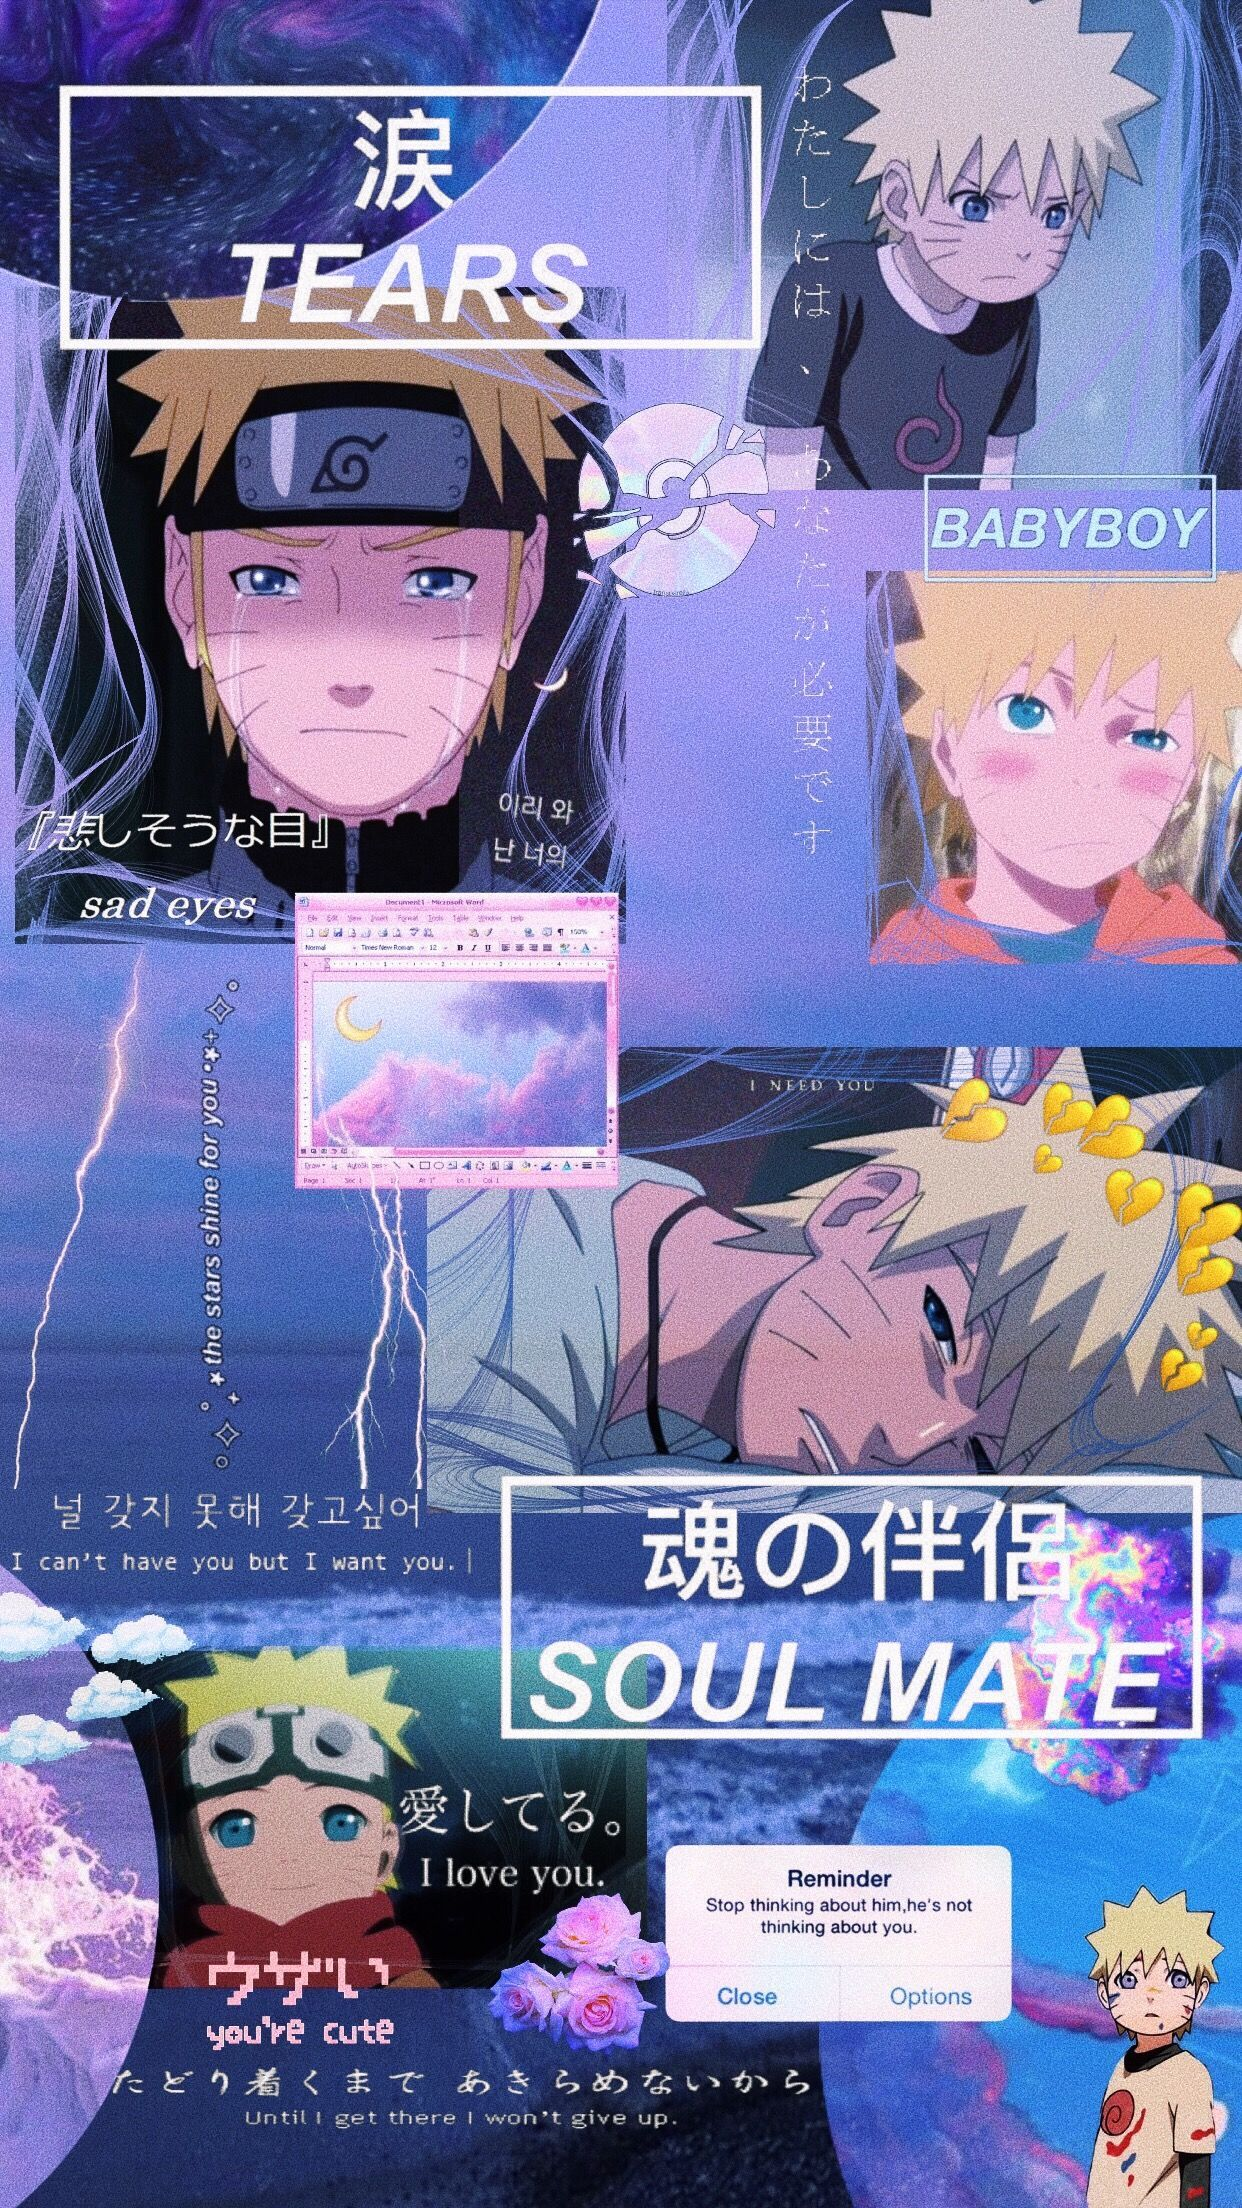 Naruto Anime Narutoshippuden Aesthetic Edit Wallpaper Anime Wallpaper Iphone Naruto Cute Cute Anime Wallpaper